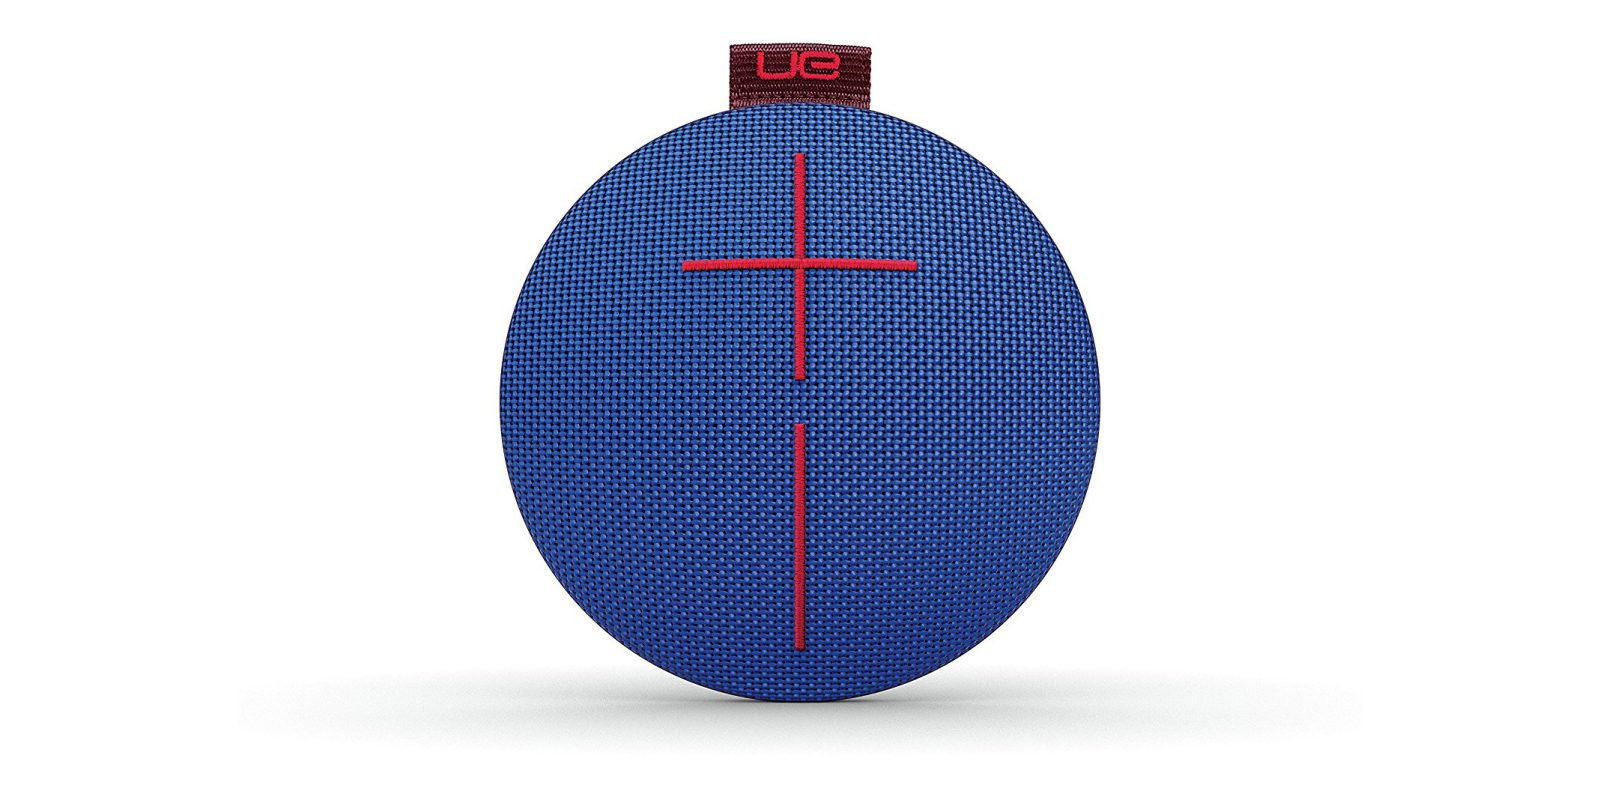 Listen To Jams On The Ue Roll 2 Bluetooth Speaker For 28 Shipped